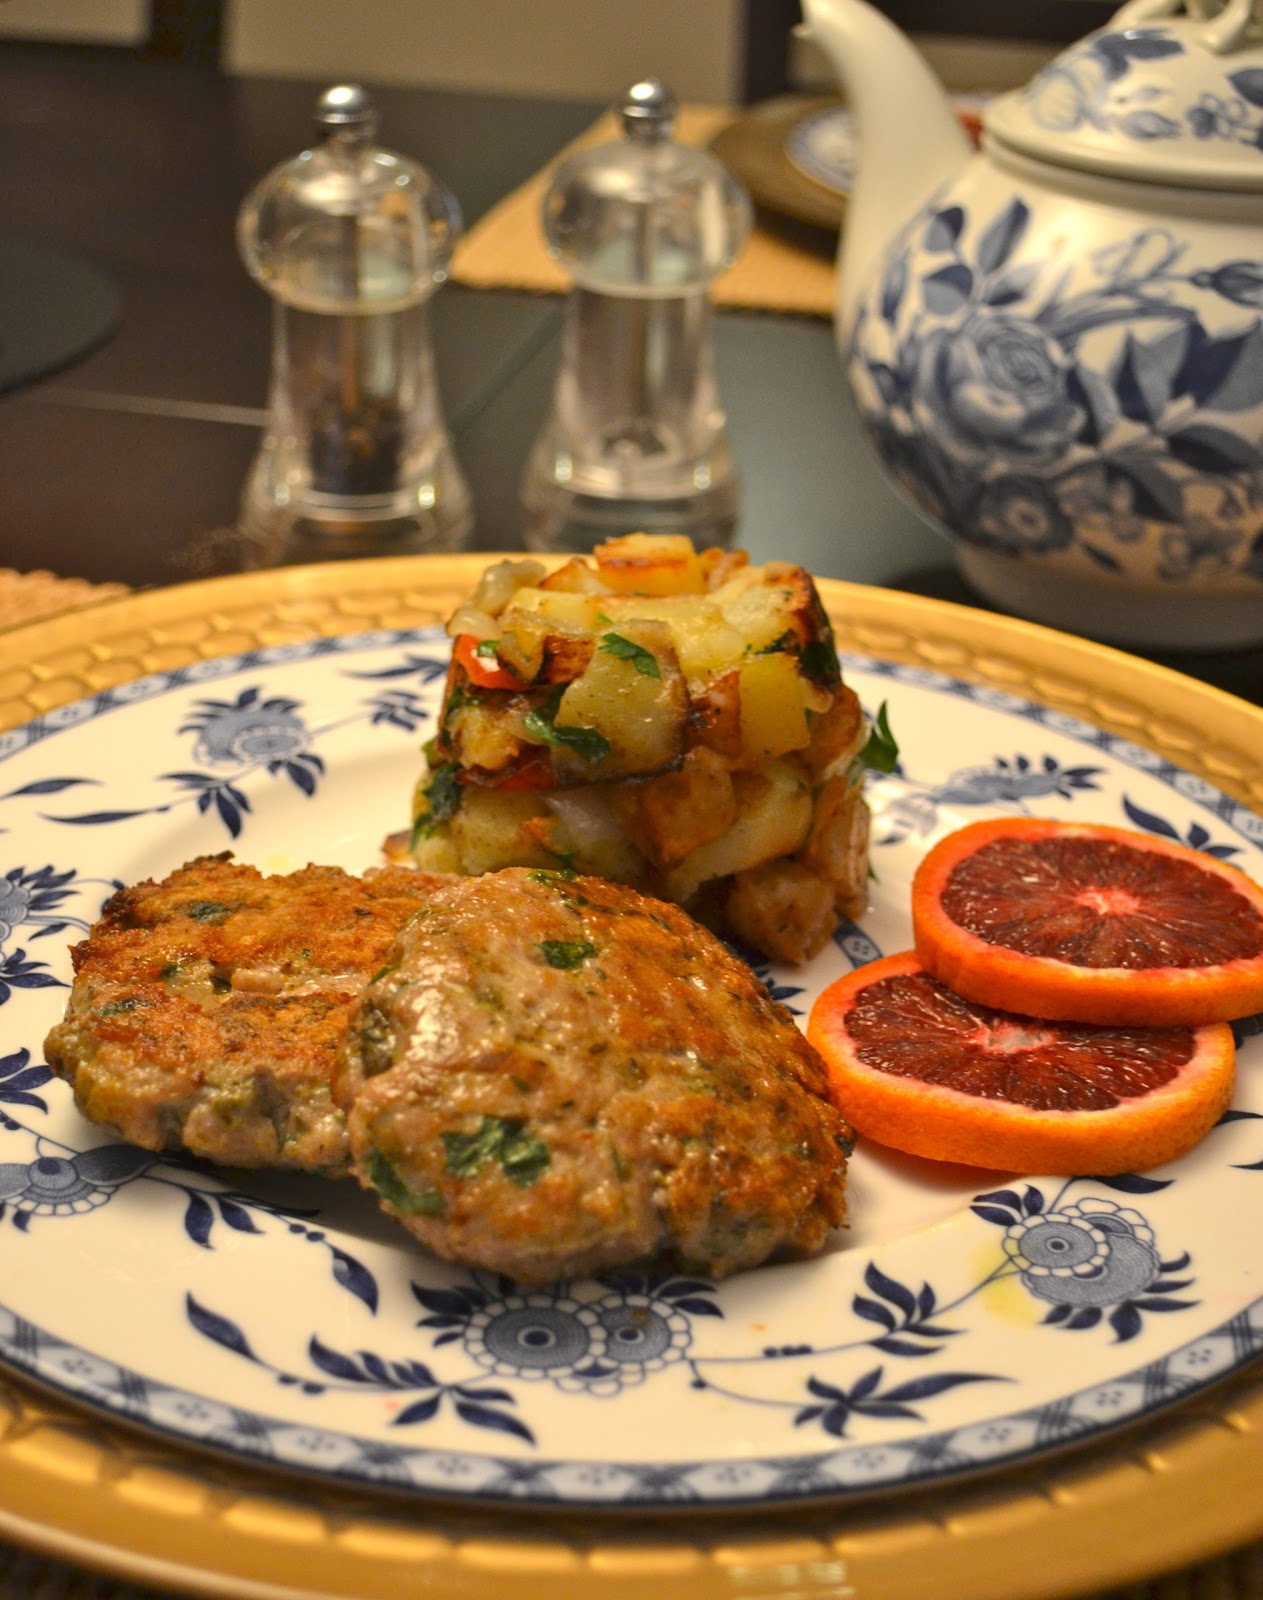 ... : Homemade Turkey Sausage Patties With Potato Hash for Slow Sundays